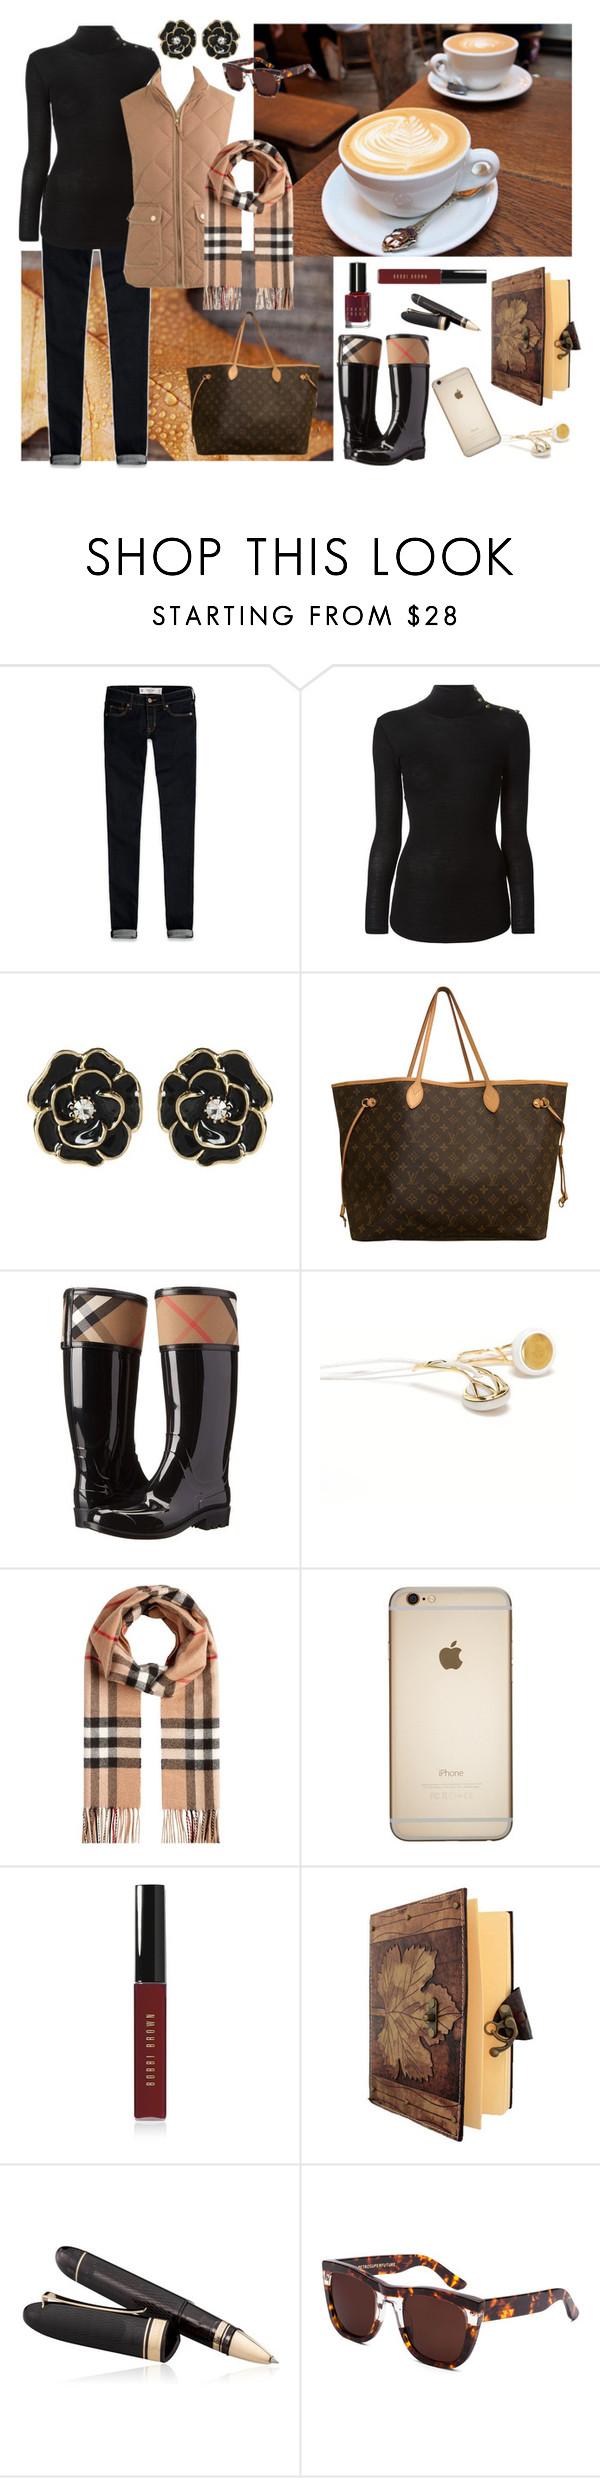 """""""Journal Writing at the Cafe"""" by margaretebooth ❤ liked on Polyvore featuring Abercrombie & Fitch, Balmain, Amrita Singh, Louis Vuitton, Burberry, Frends, Bobbi Brown Cosmetics, OMAS and RetroSuperFuture"""